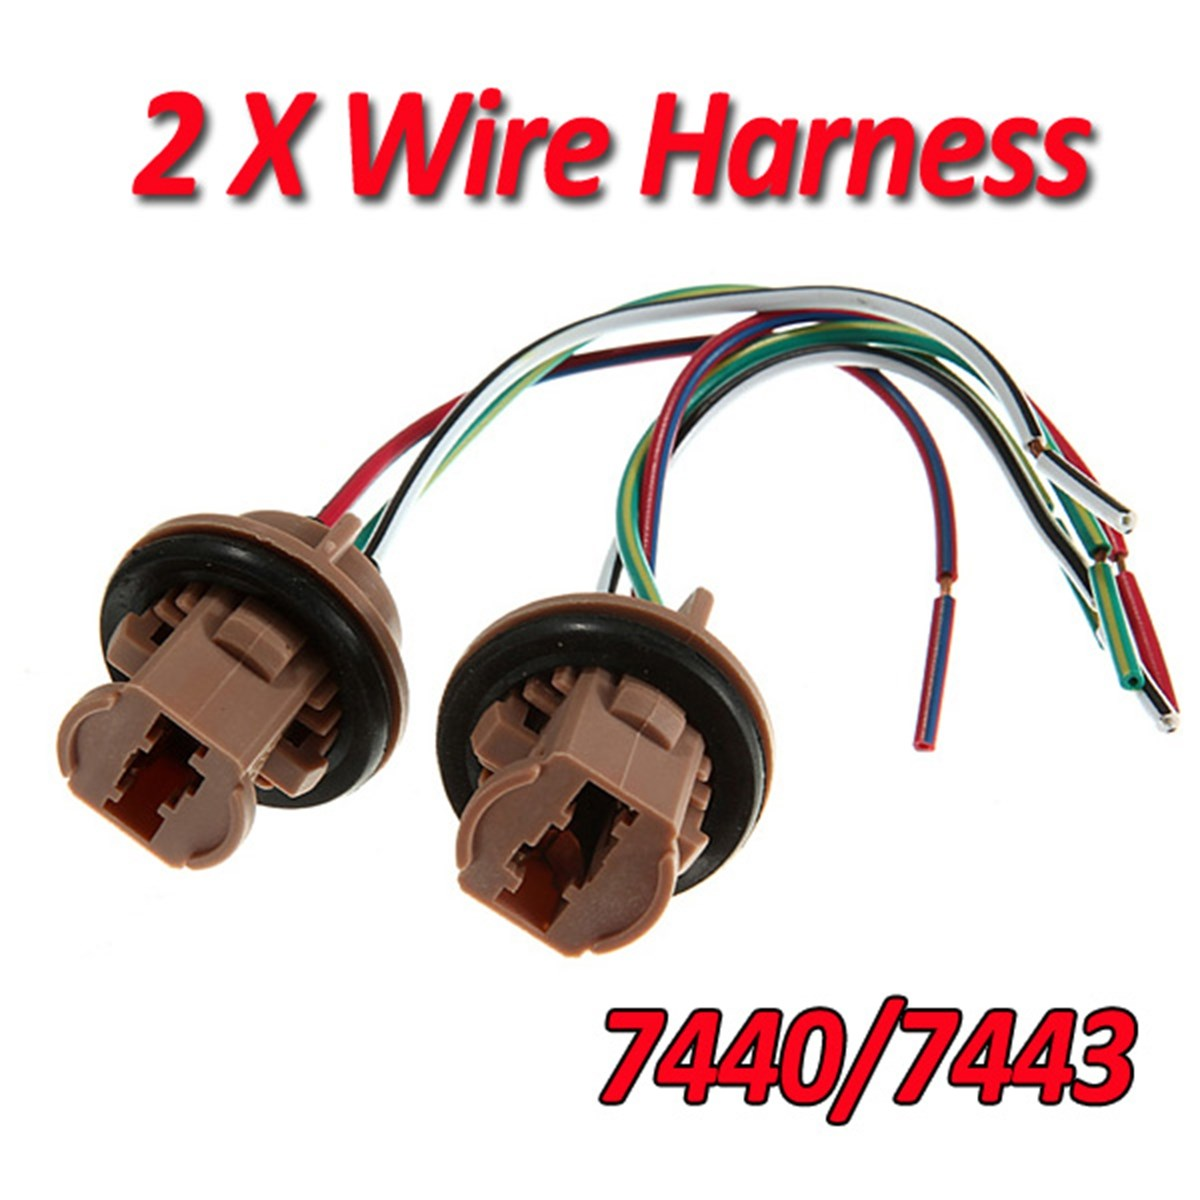 Wire Harness Dual Plug Light Bar Aliexpressharness Leg Wiring Include Switch Kit Support 120w Led Promotion Shop For Promotional 2x 7440 7443 T20 Font B Lead Stereo Radio